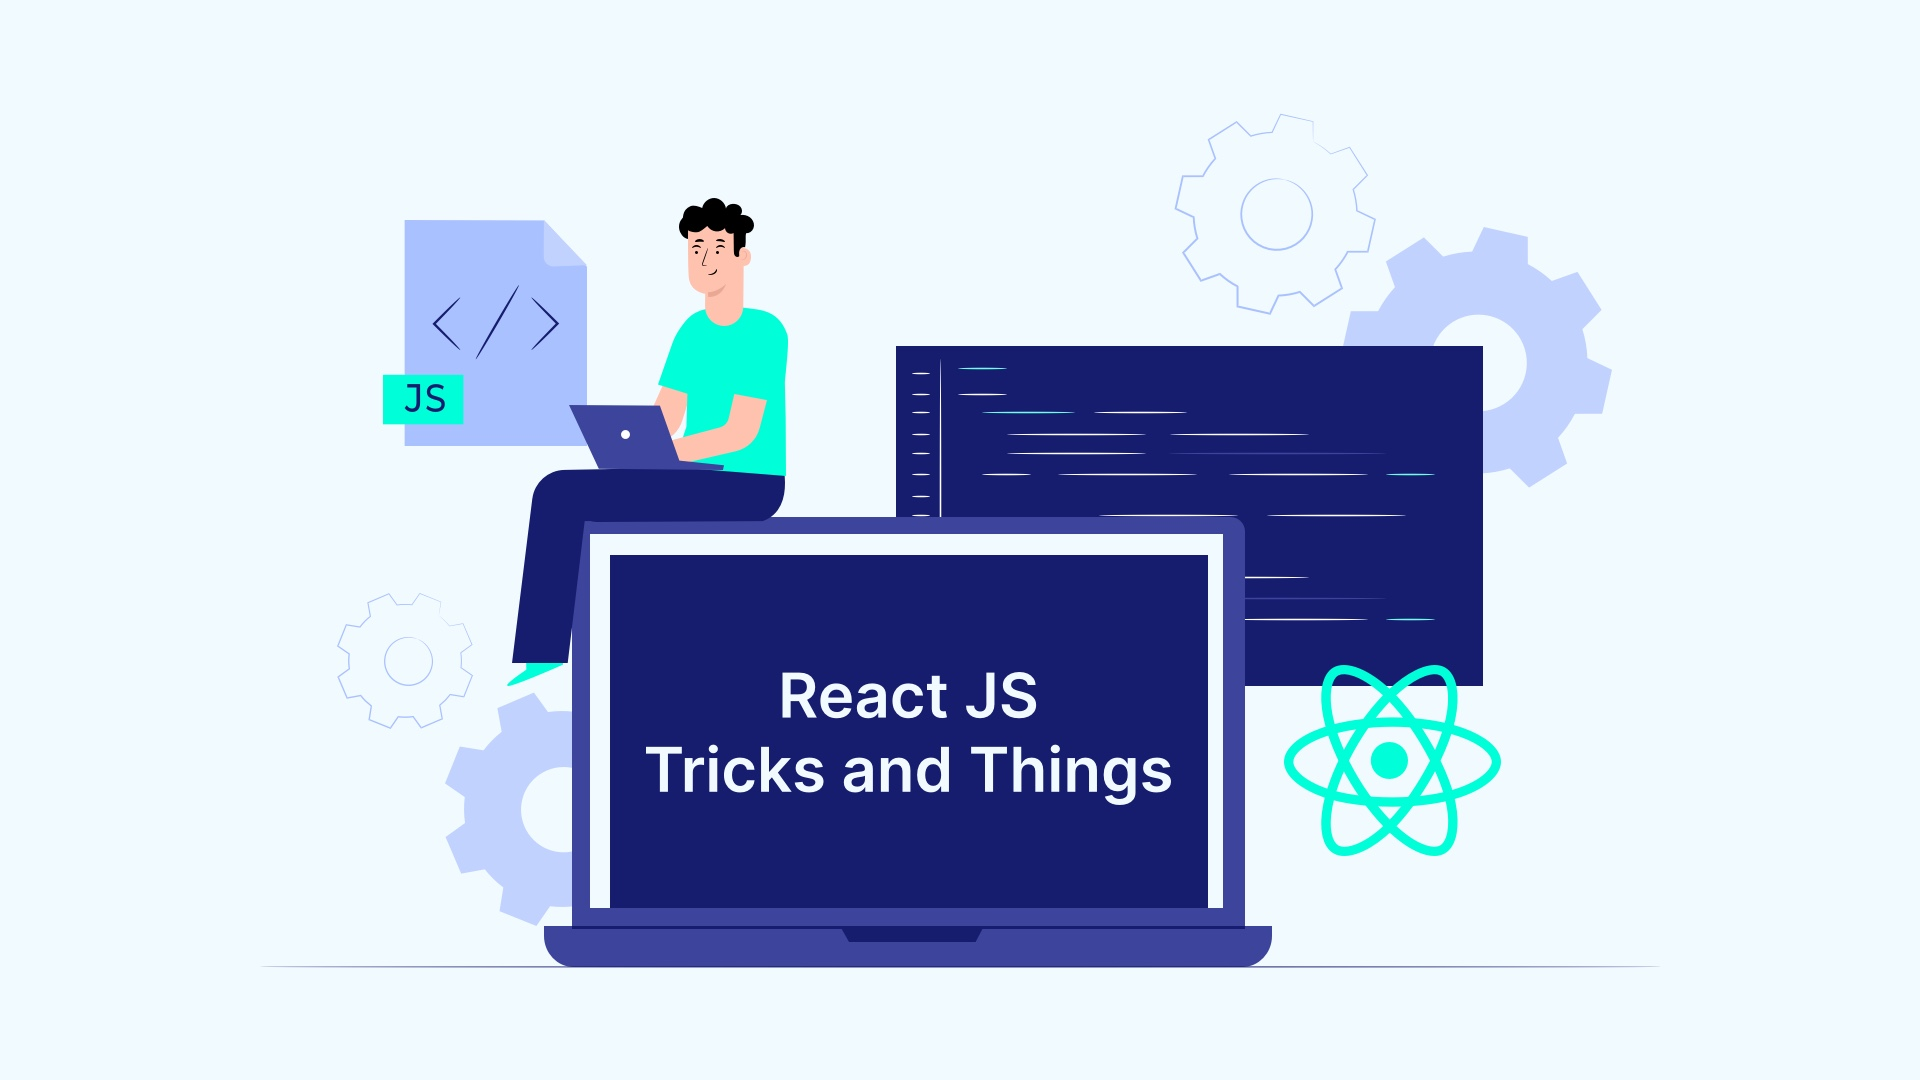 React JS tips and tricks